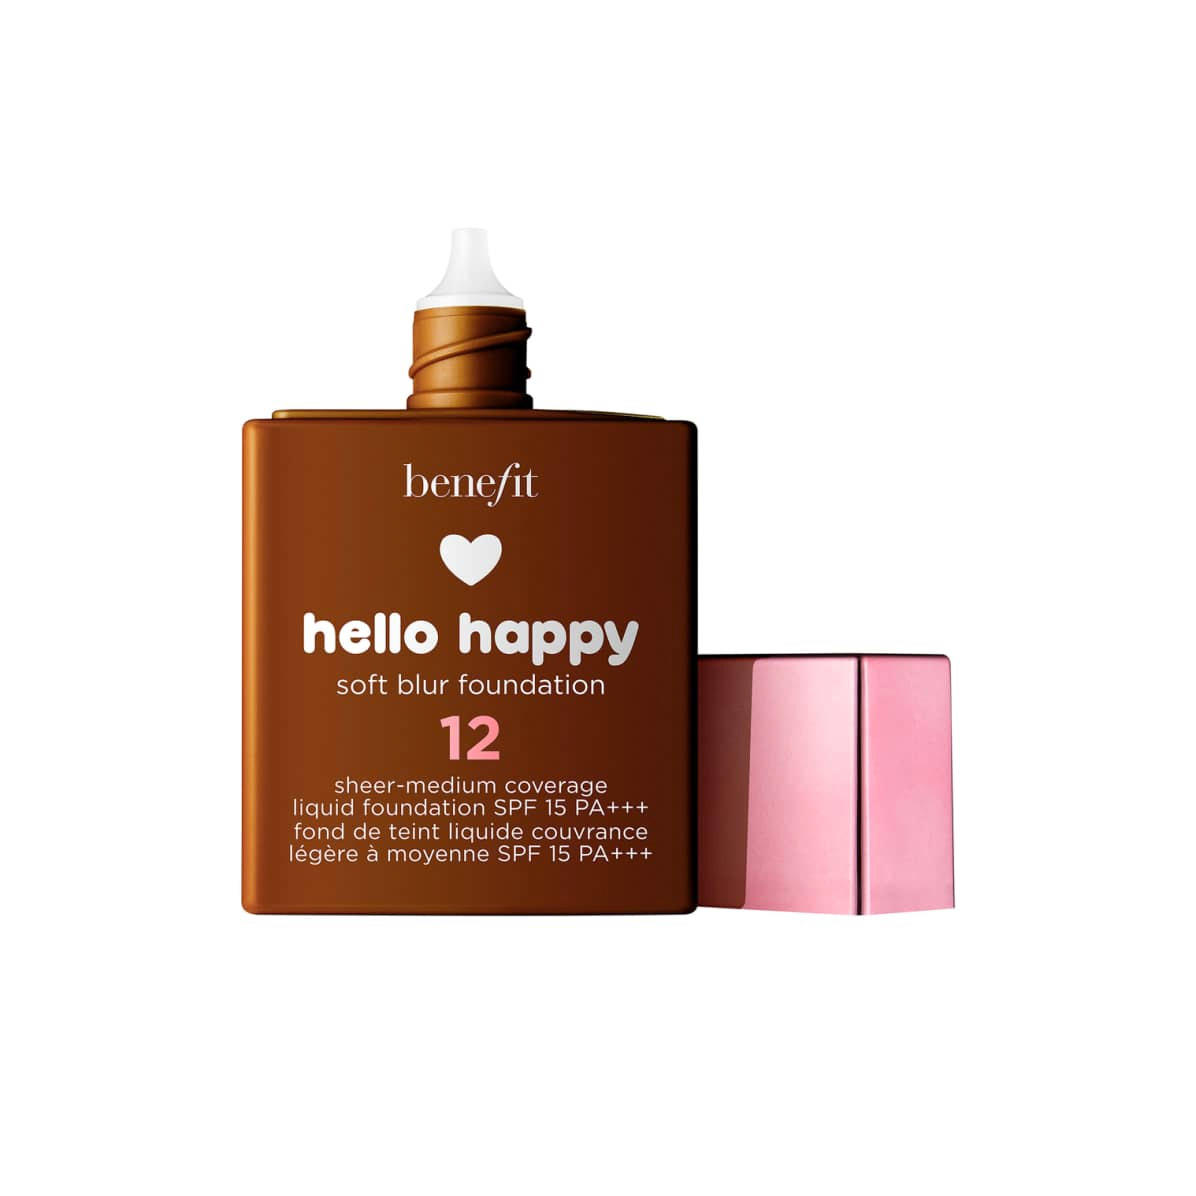 Benefit Hello Happy Soft Blur Foundation 12